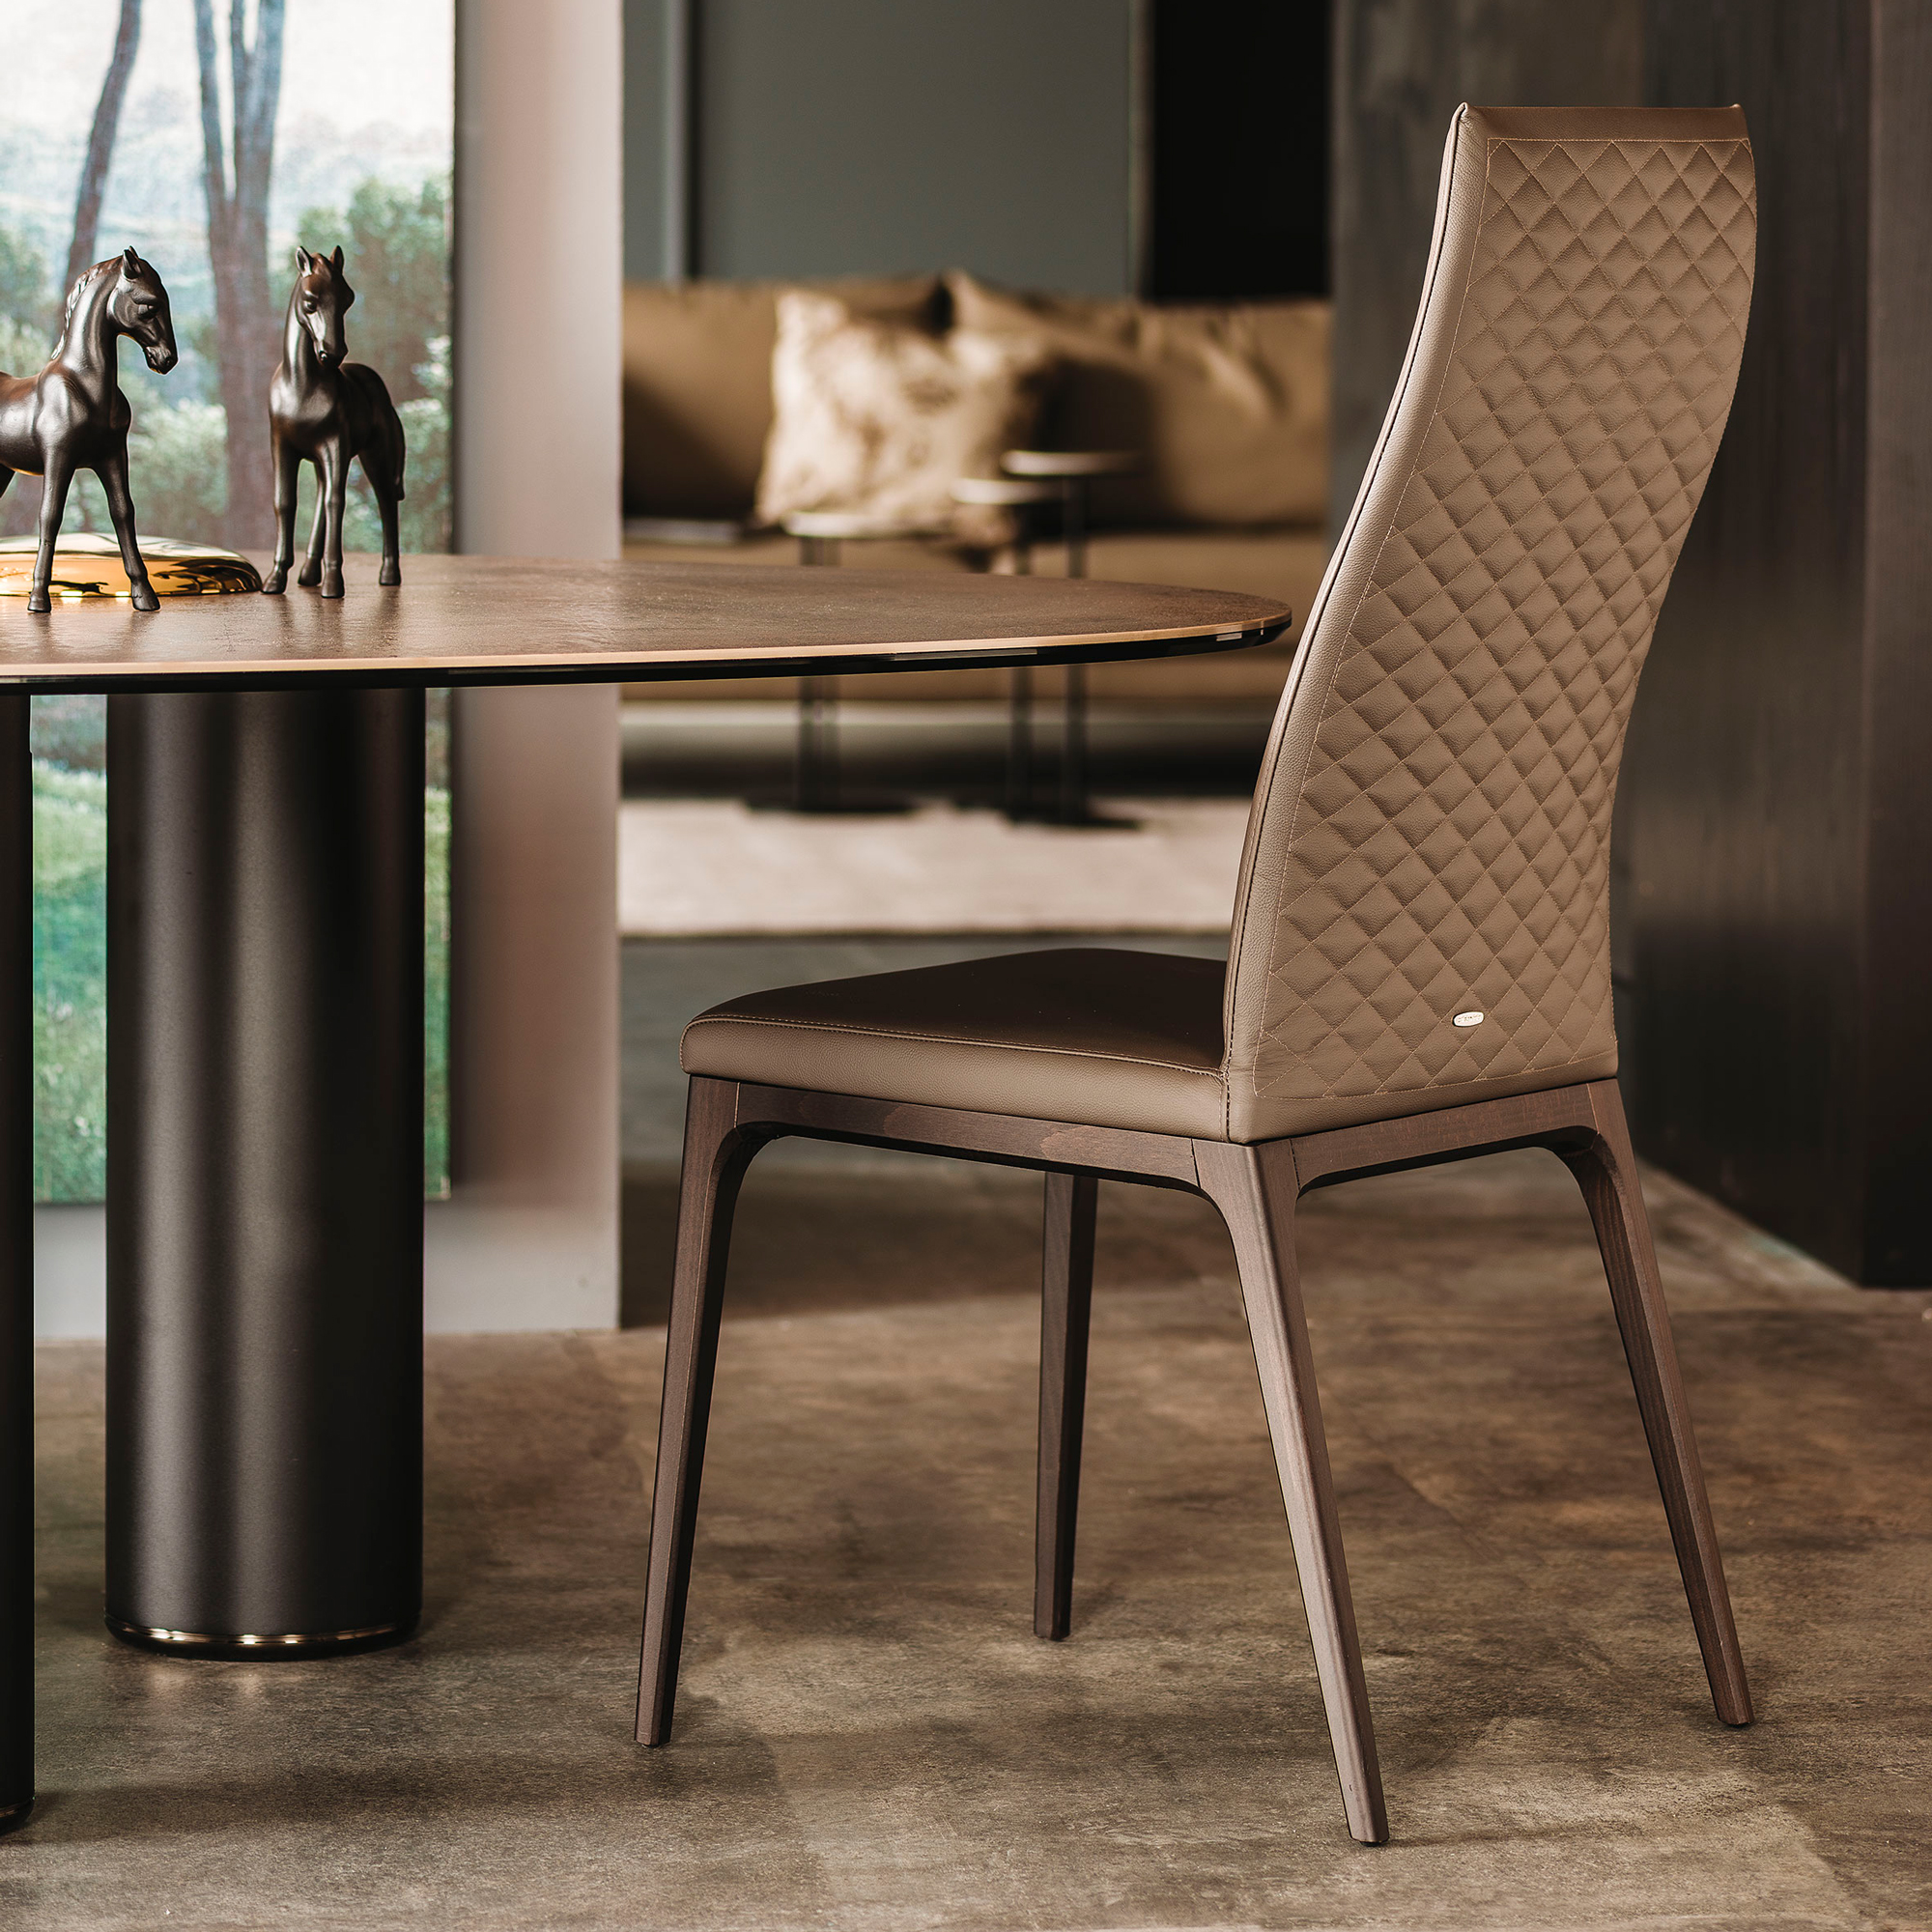 Luxury Italian Arcadia Couture Chair Italian Designer Amp Luxury Furniture At Cassoni